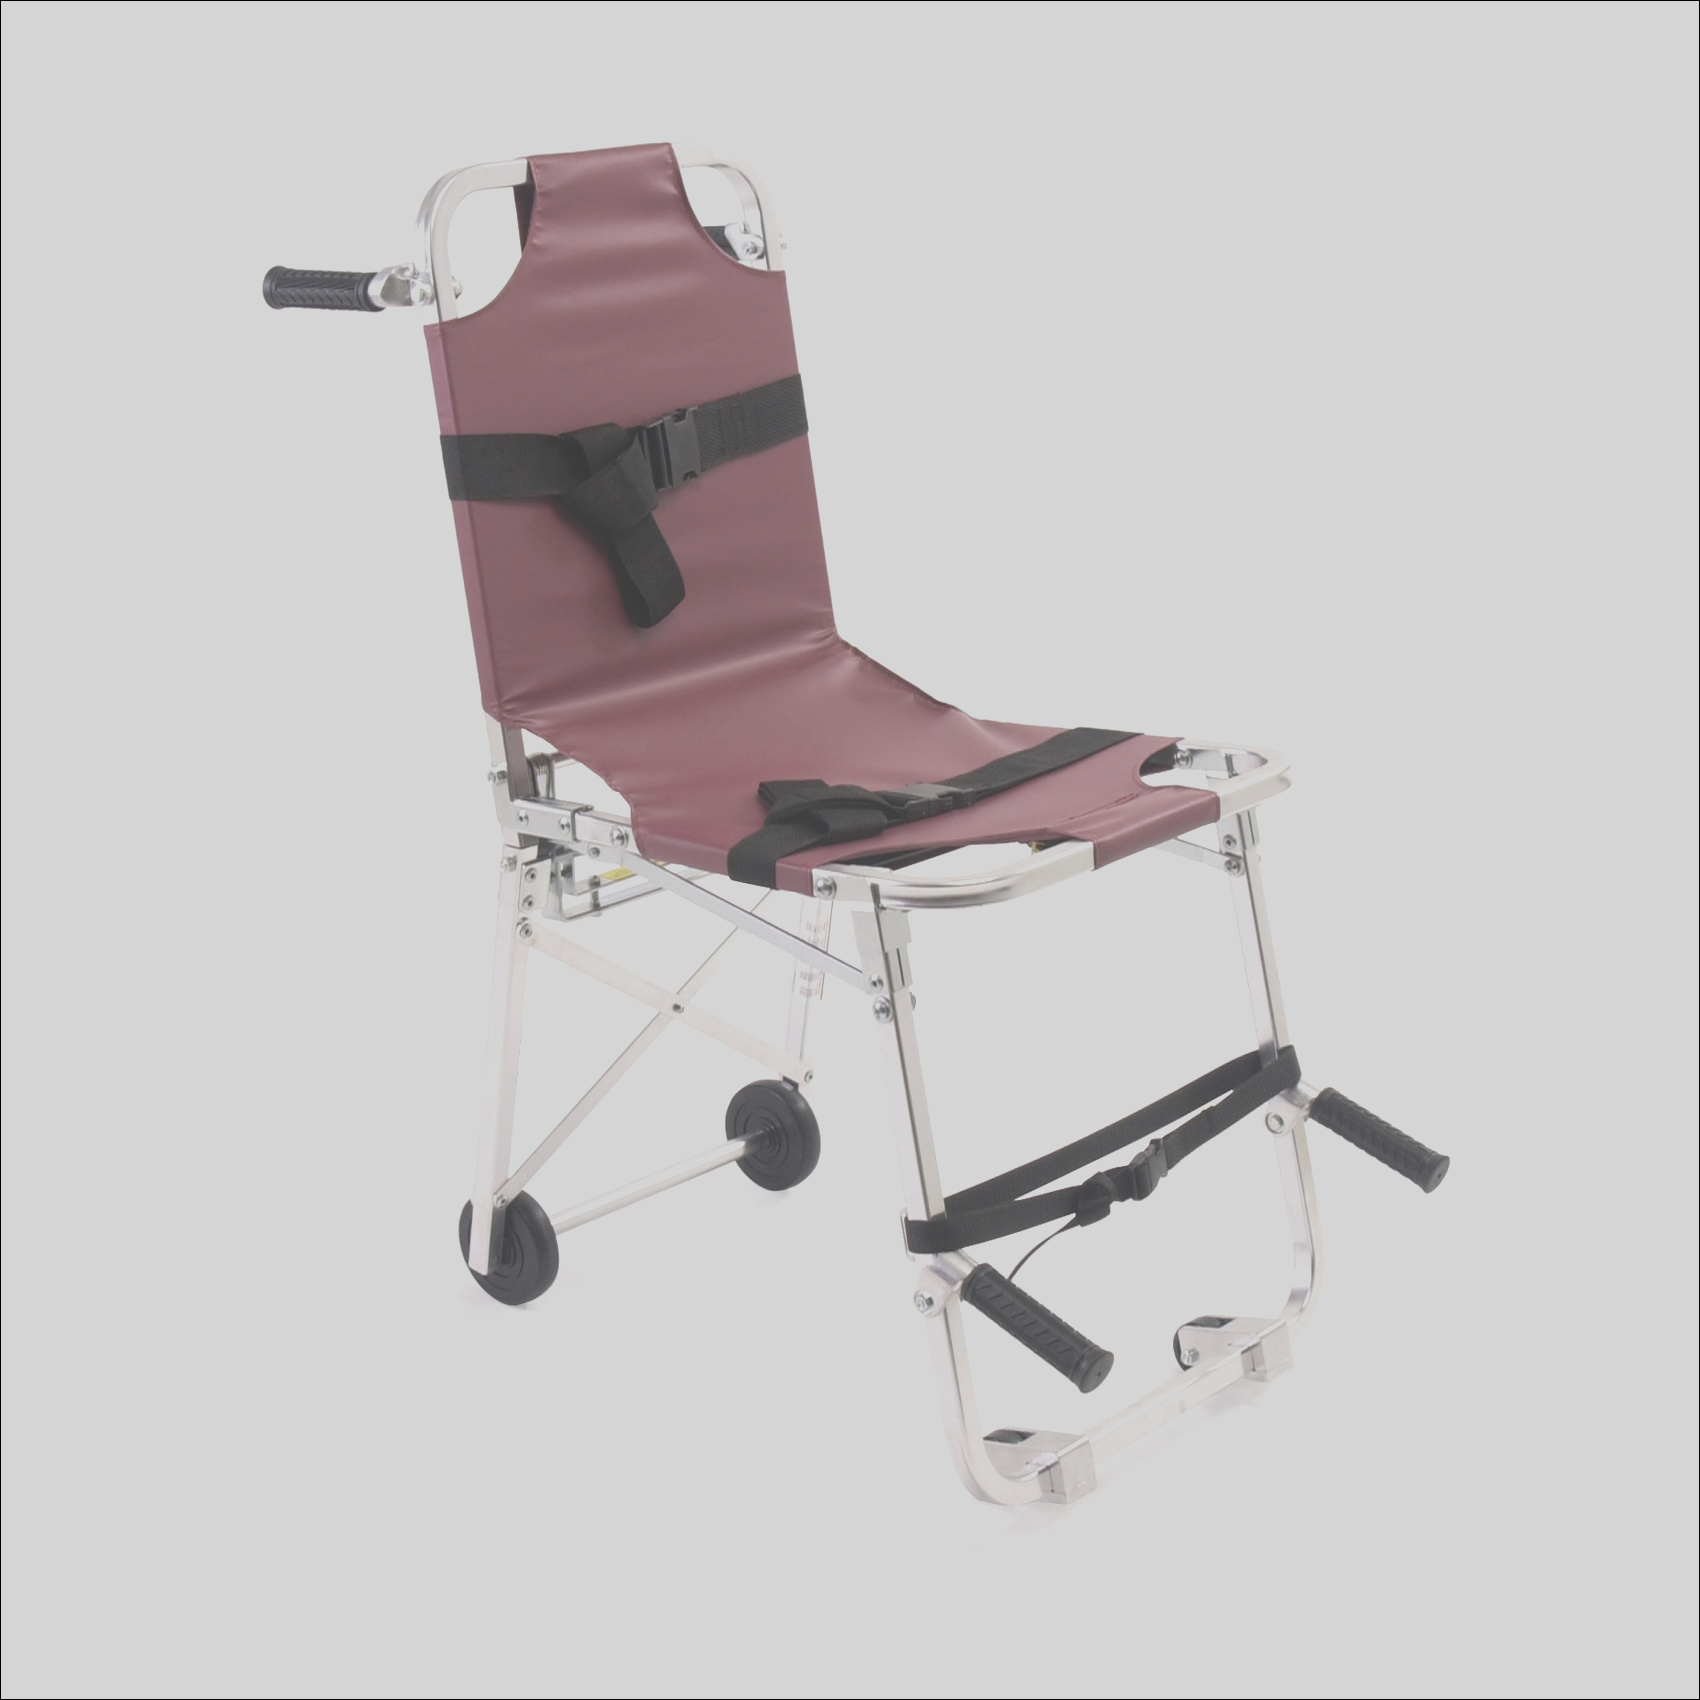 model 42 stair chair with vinyl cover